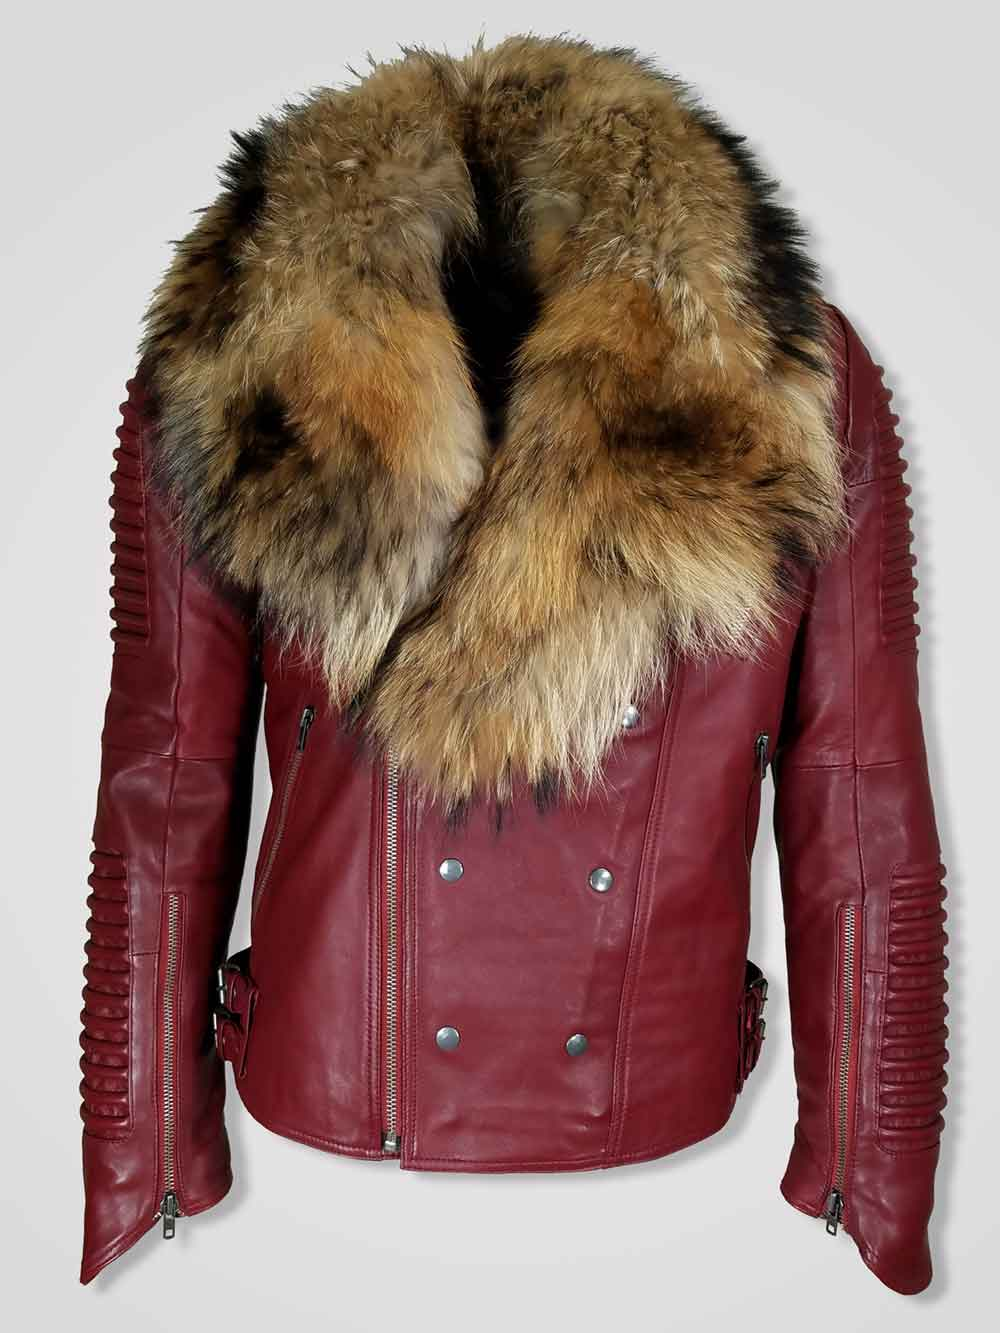 Men S Bluish Pure Leather Jacket With Real Fur Collar For Winter